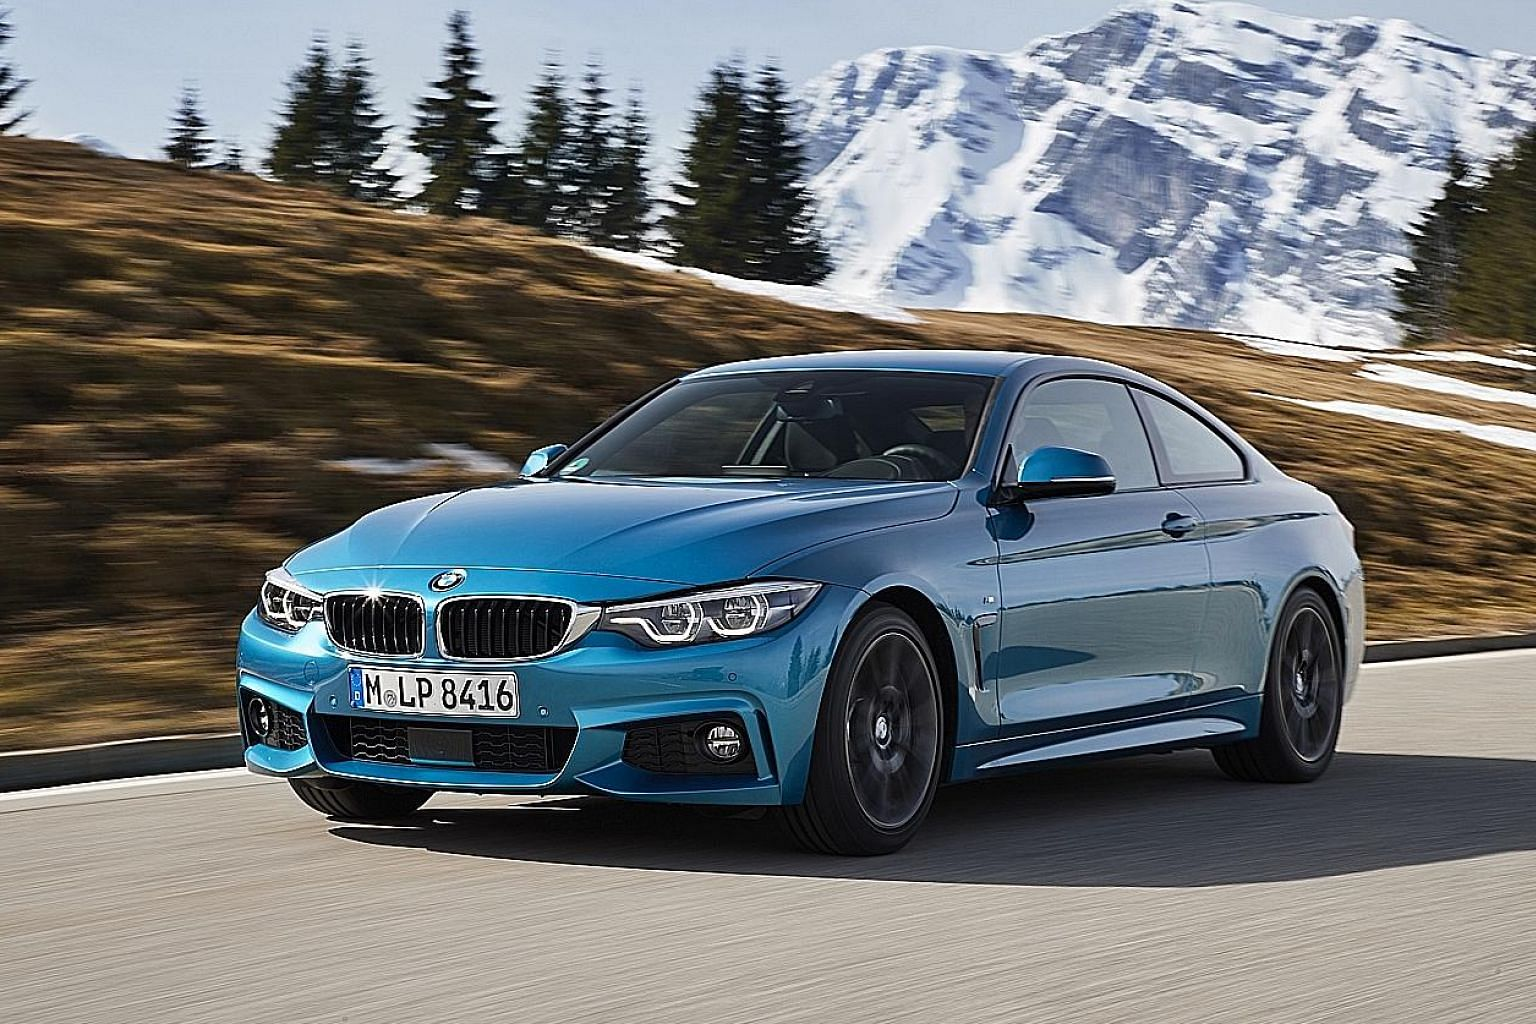 BMW's signature six-cylinder petrol power plant and eight-speed automatic gearbox provide the 440i Coupe with a sonorous and smooth drive.